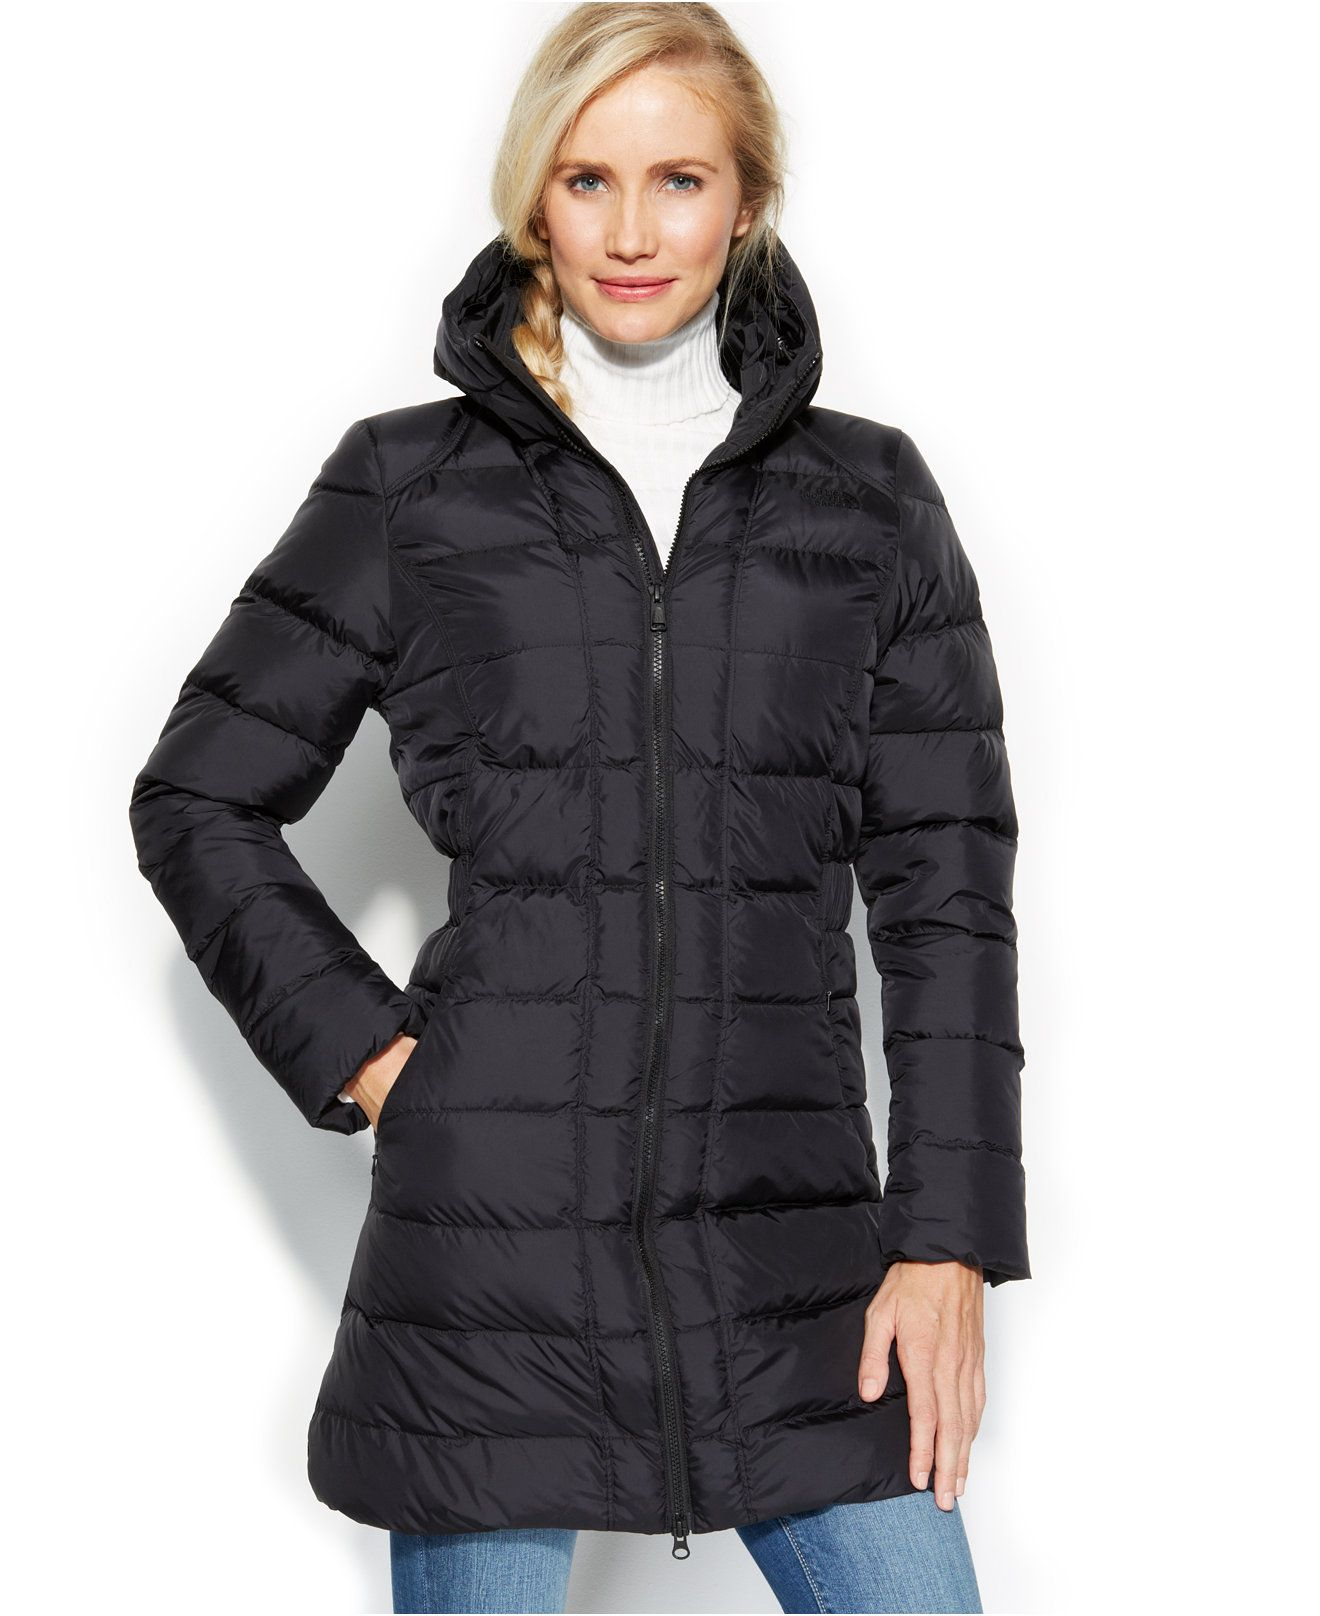 The North Face Gotham Full-Zip Down Parka - Coats - Women - Macy's ...